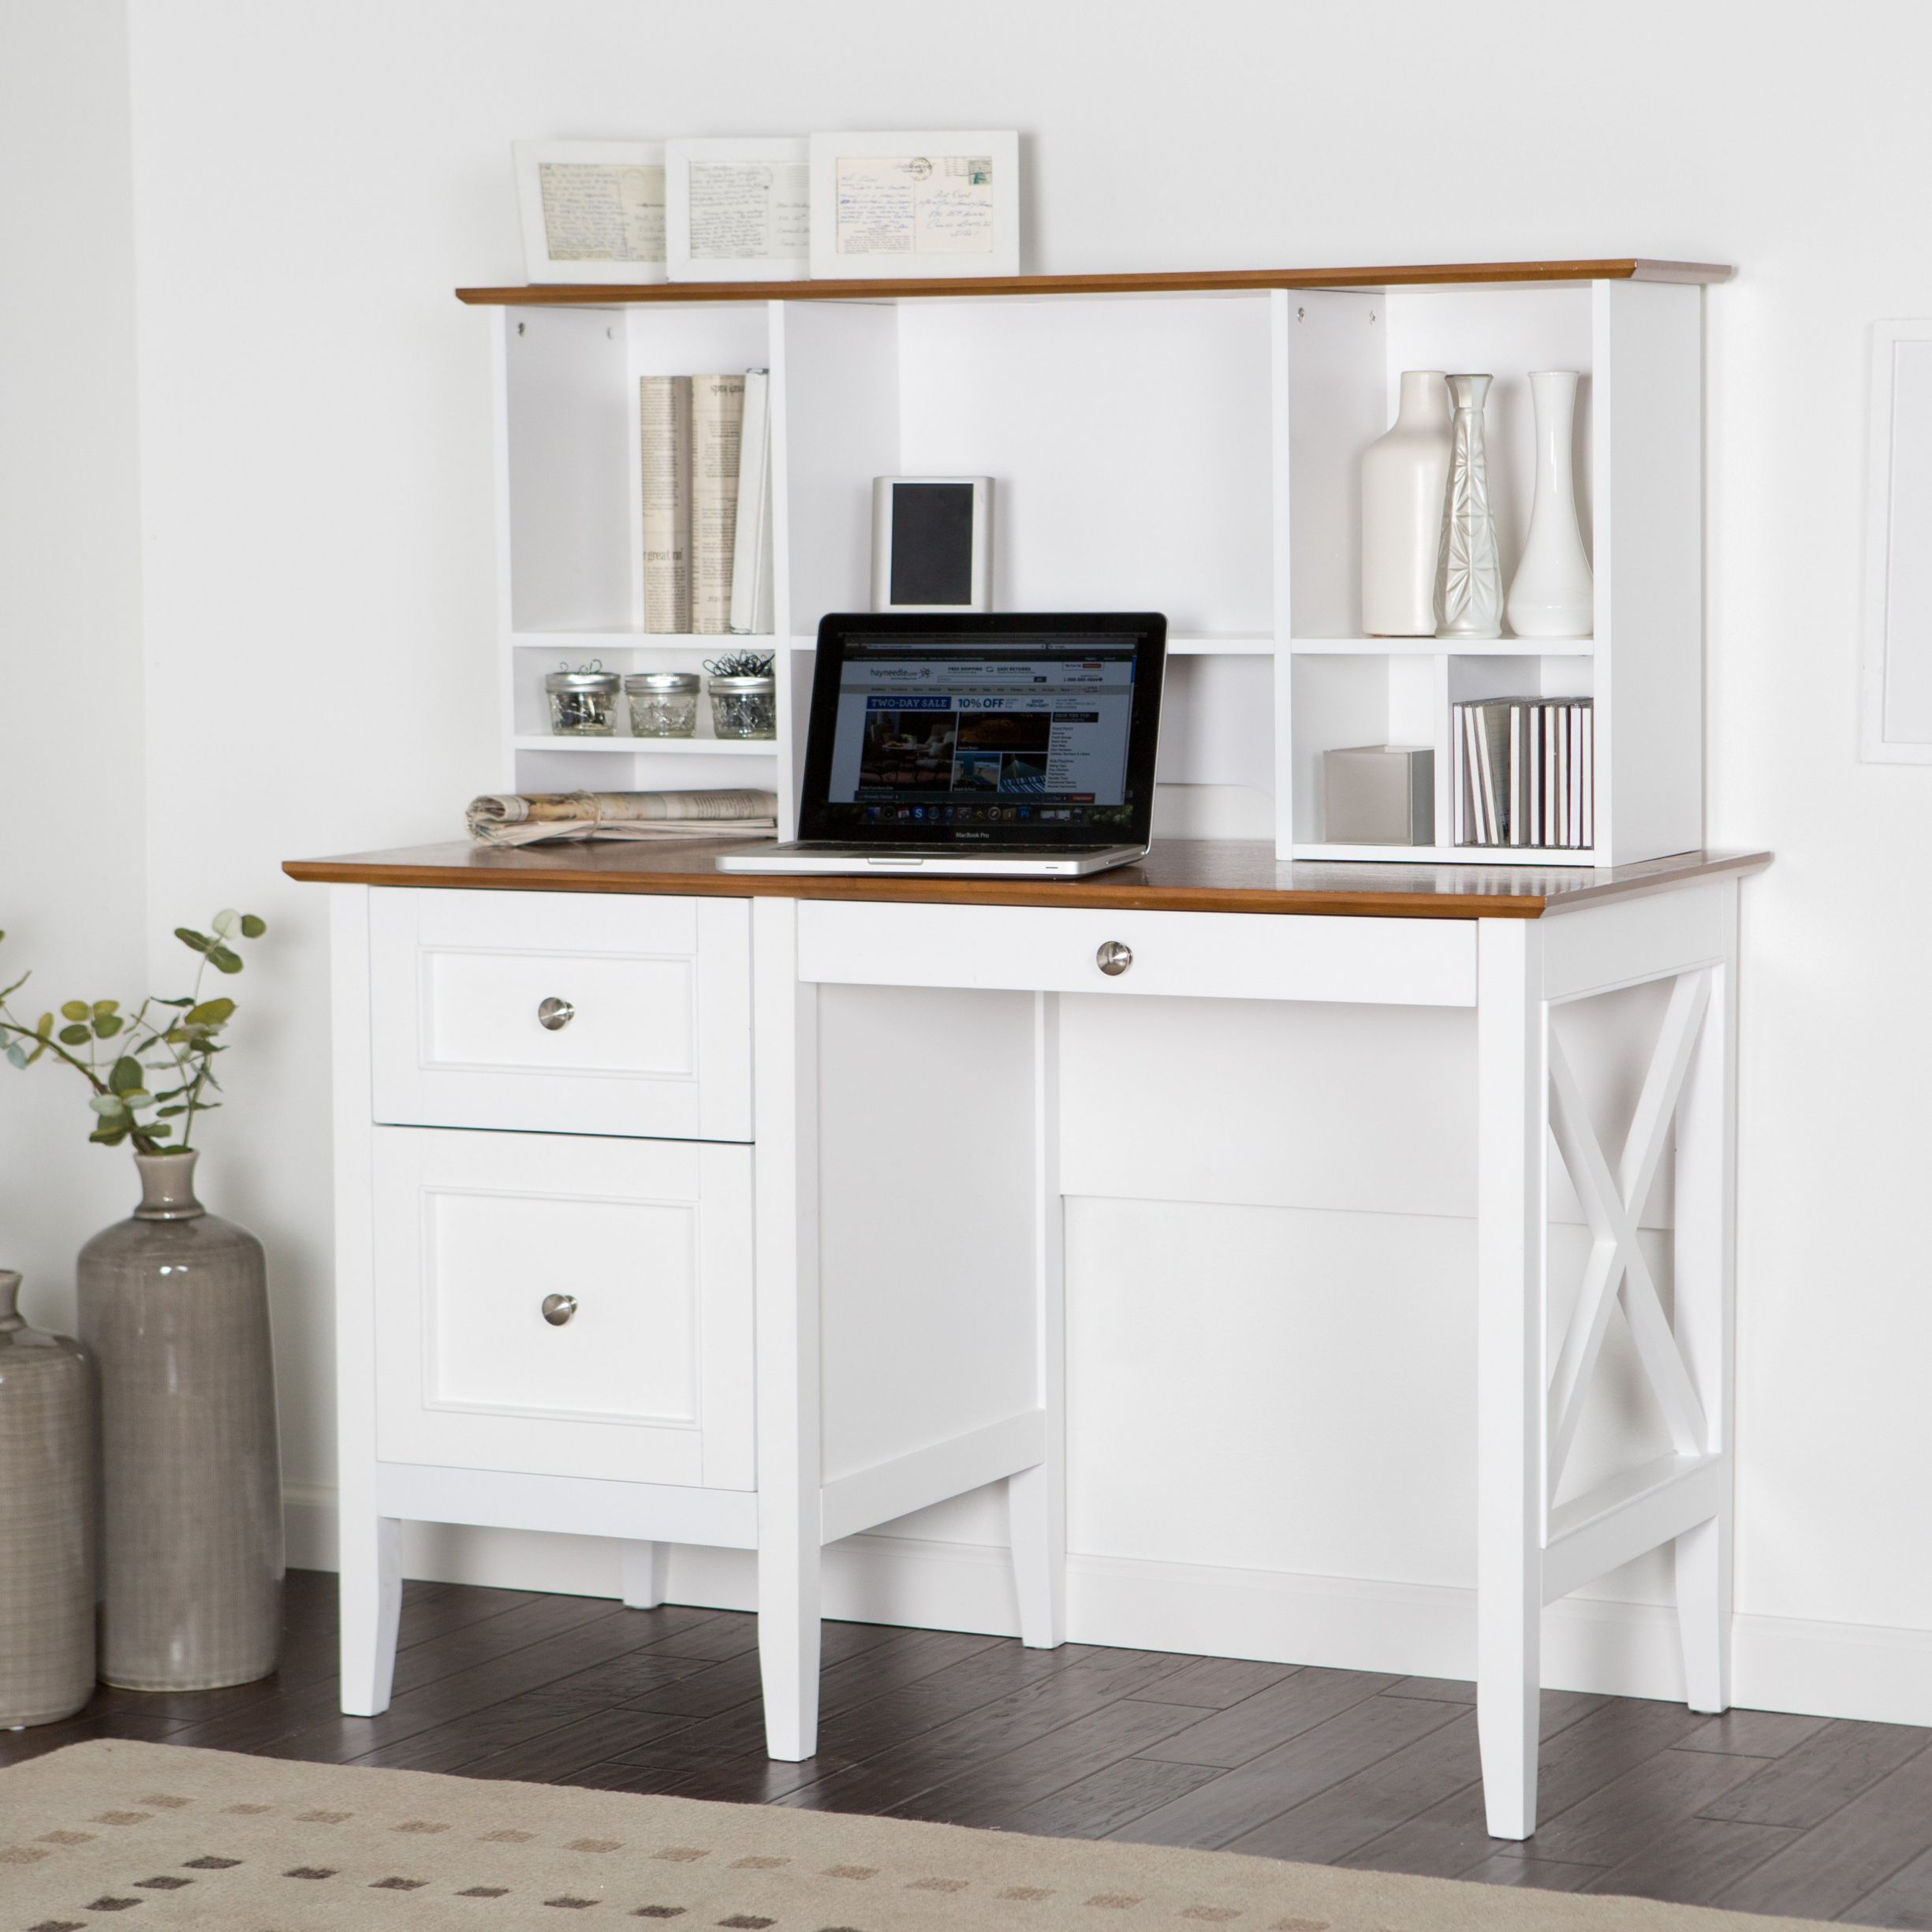 Advantages Of White Desk Hutch Furnishings 30 Wood Desk for Sale - Contemporary Modern Furniture Check more at http:--